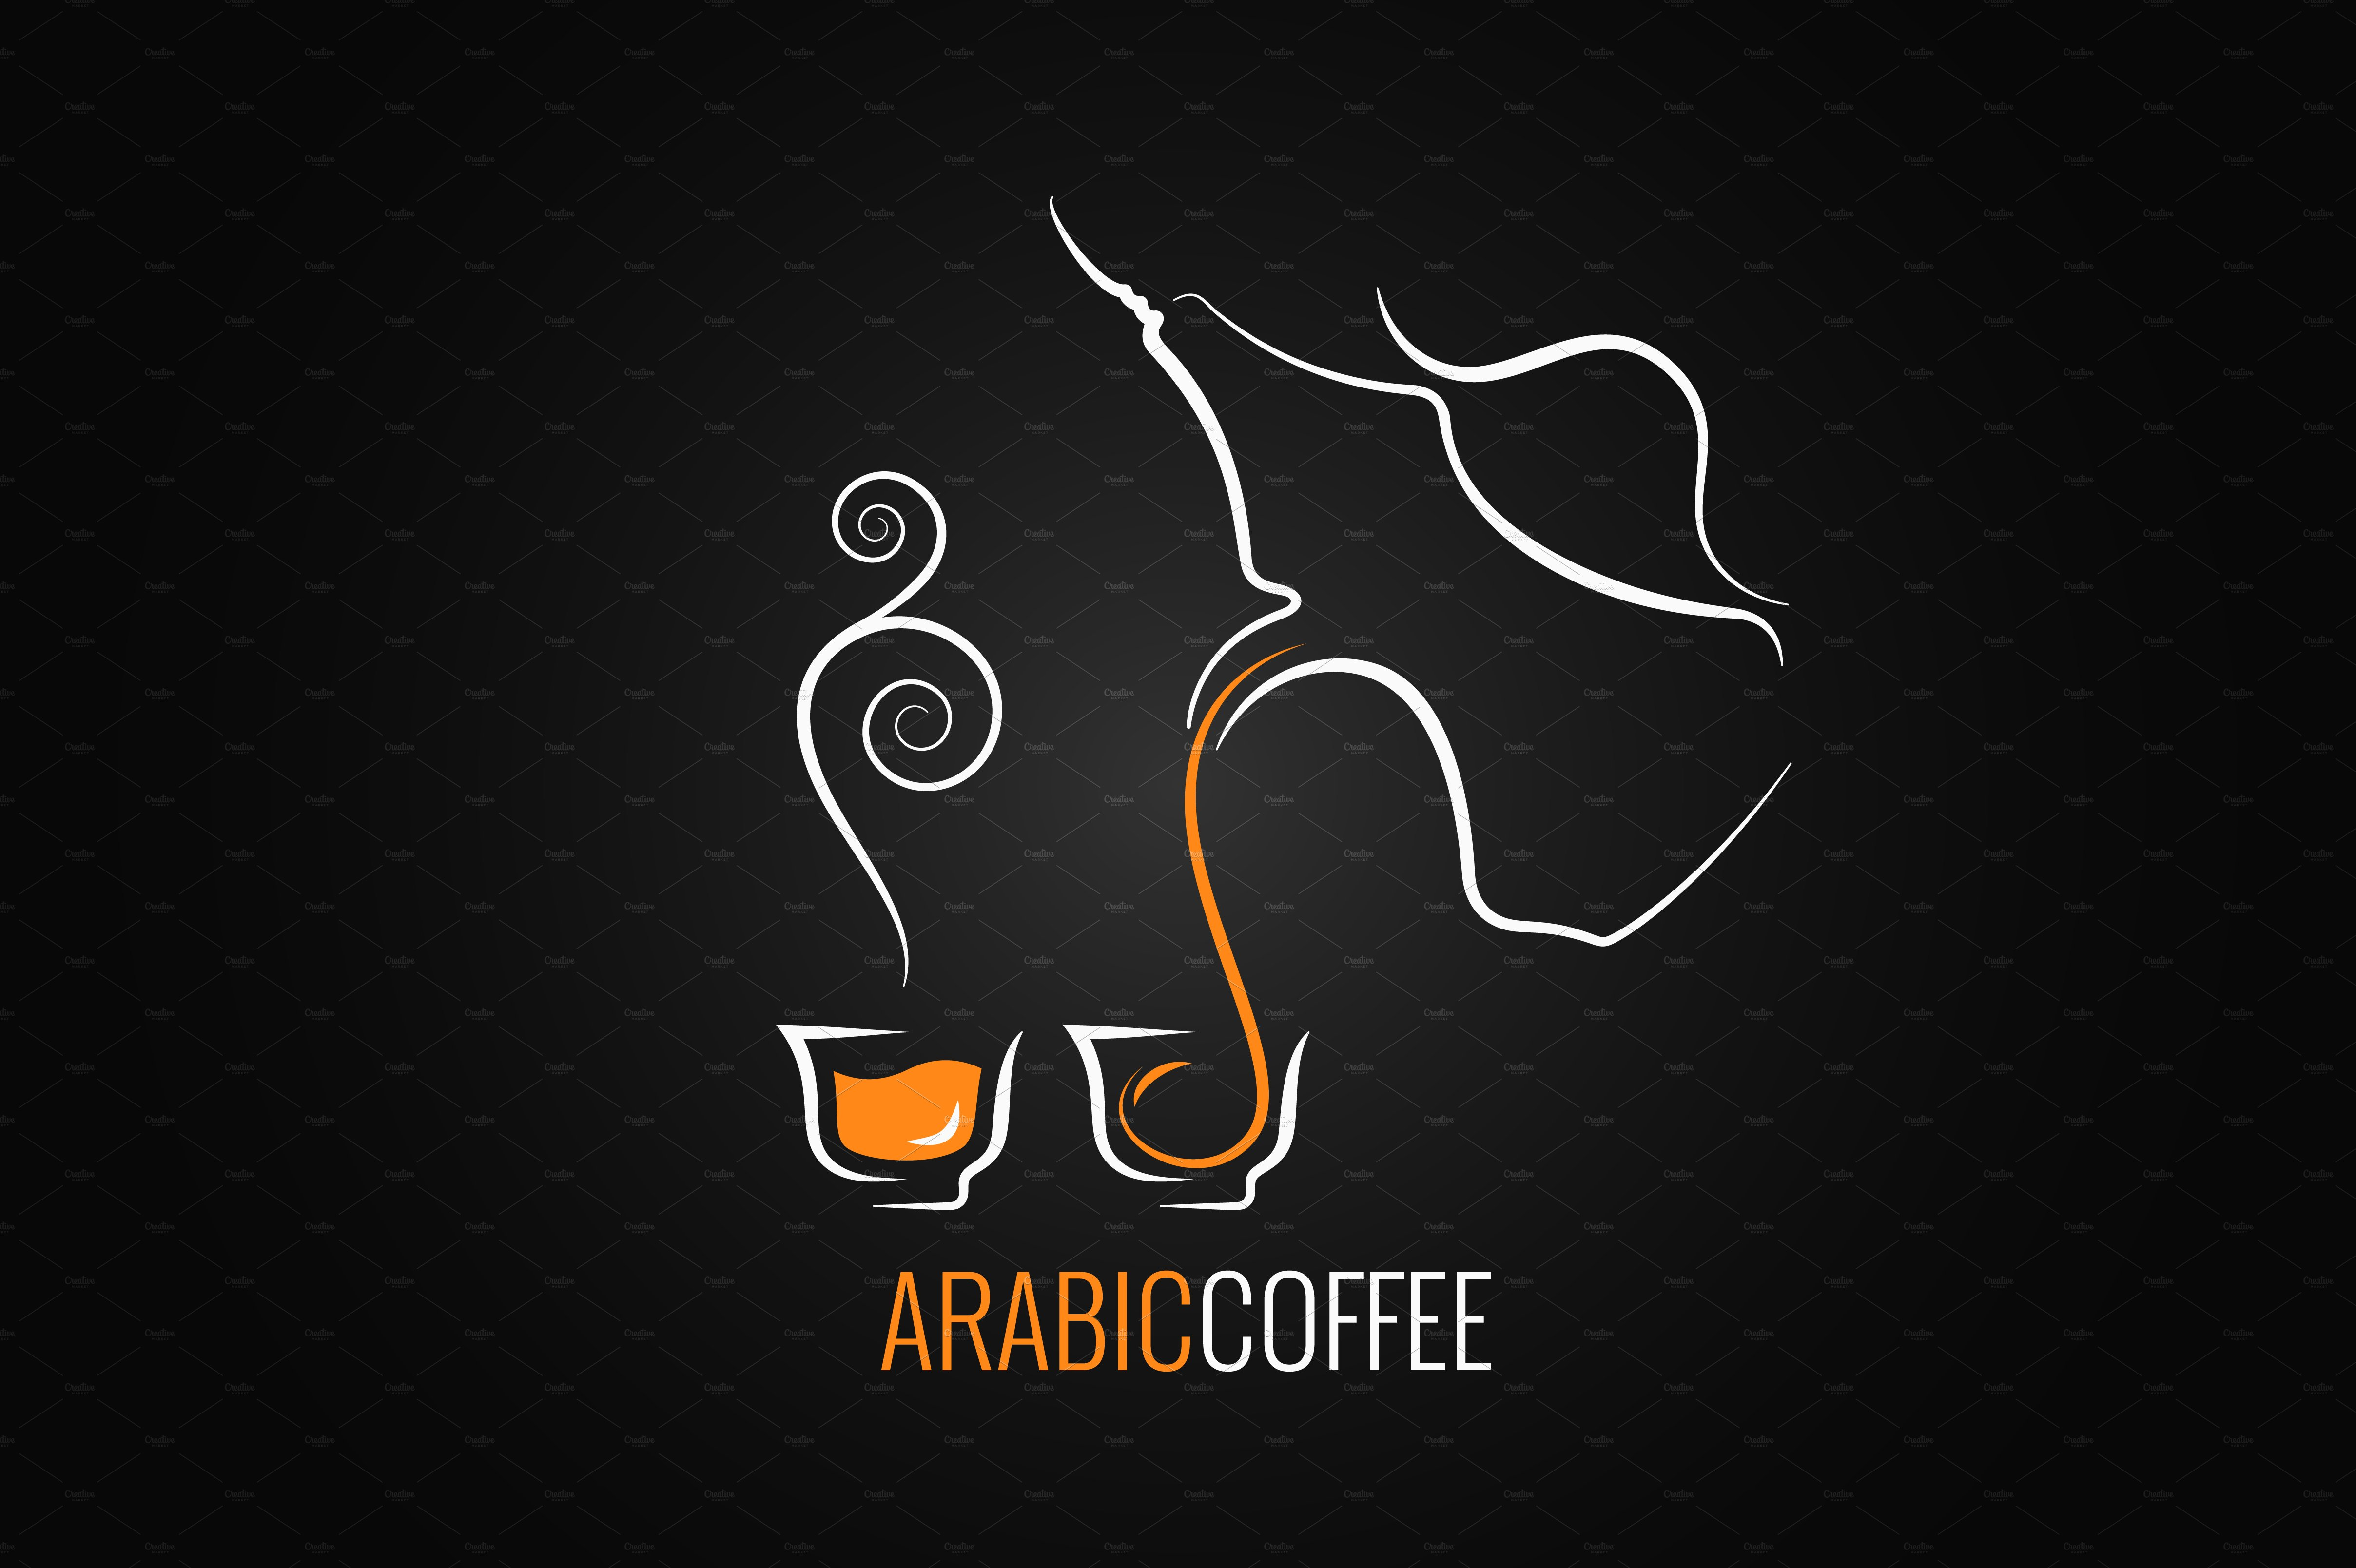 Arabic coffee logo design background logo templates for Design lago